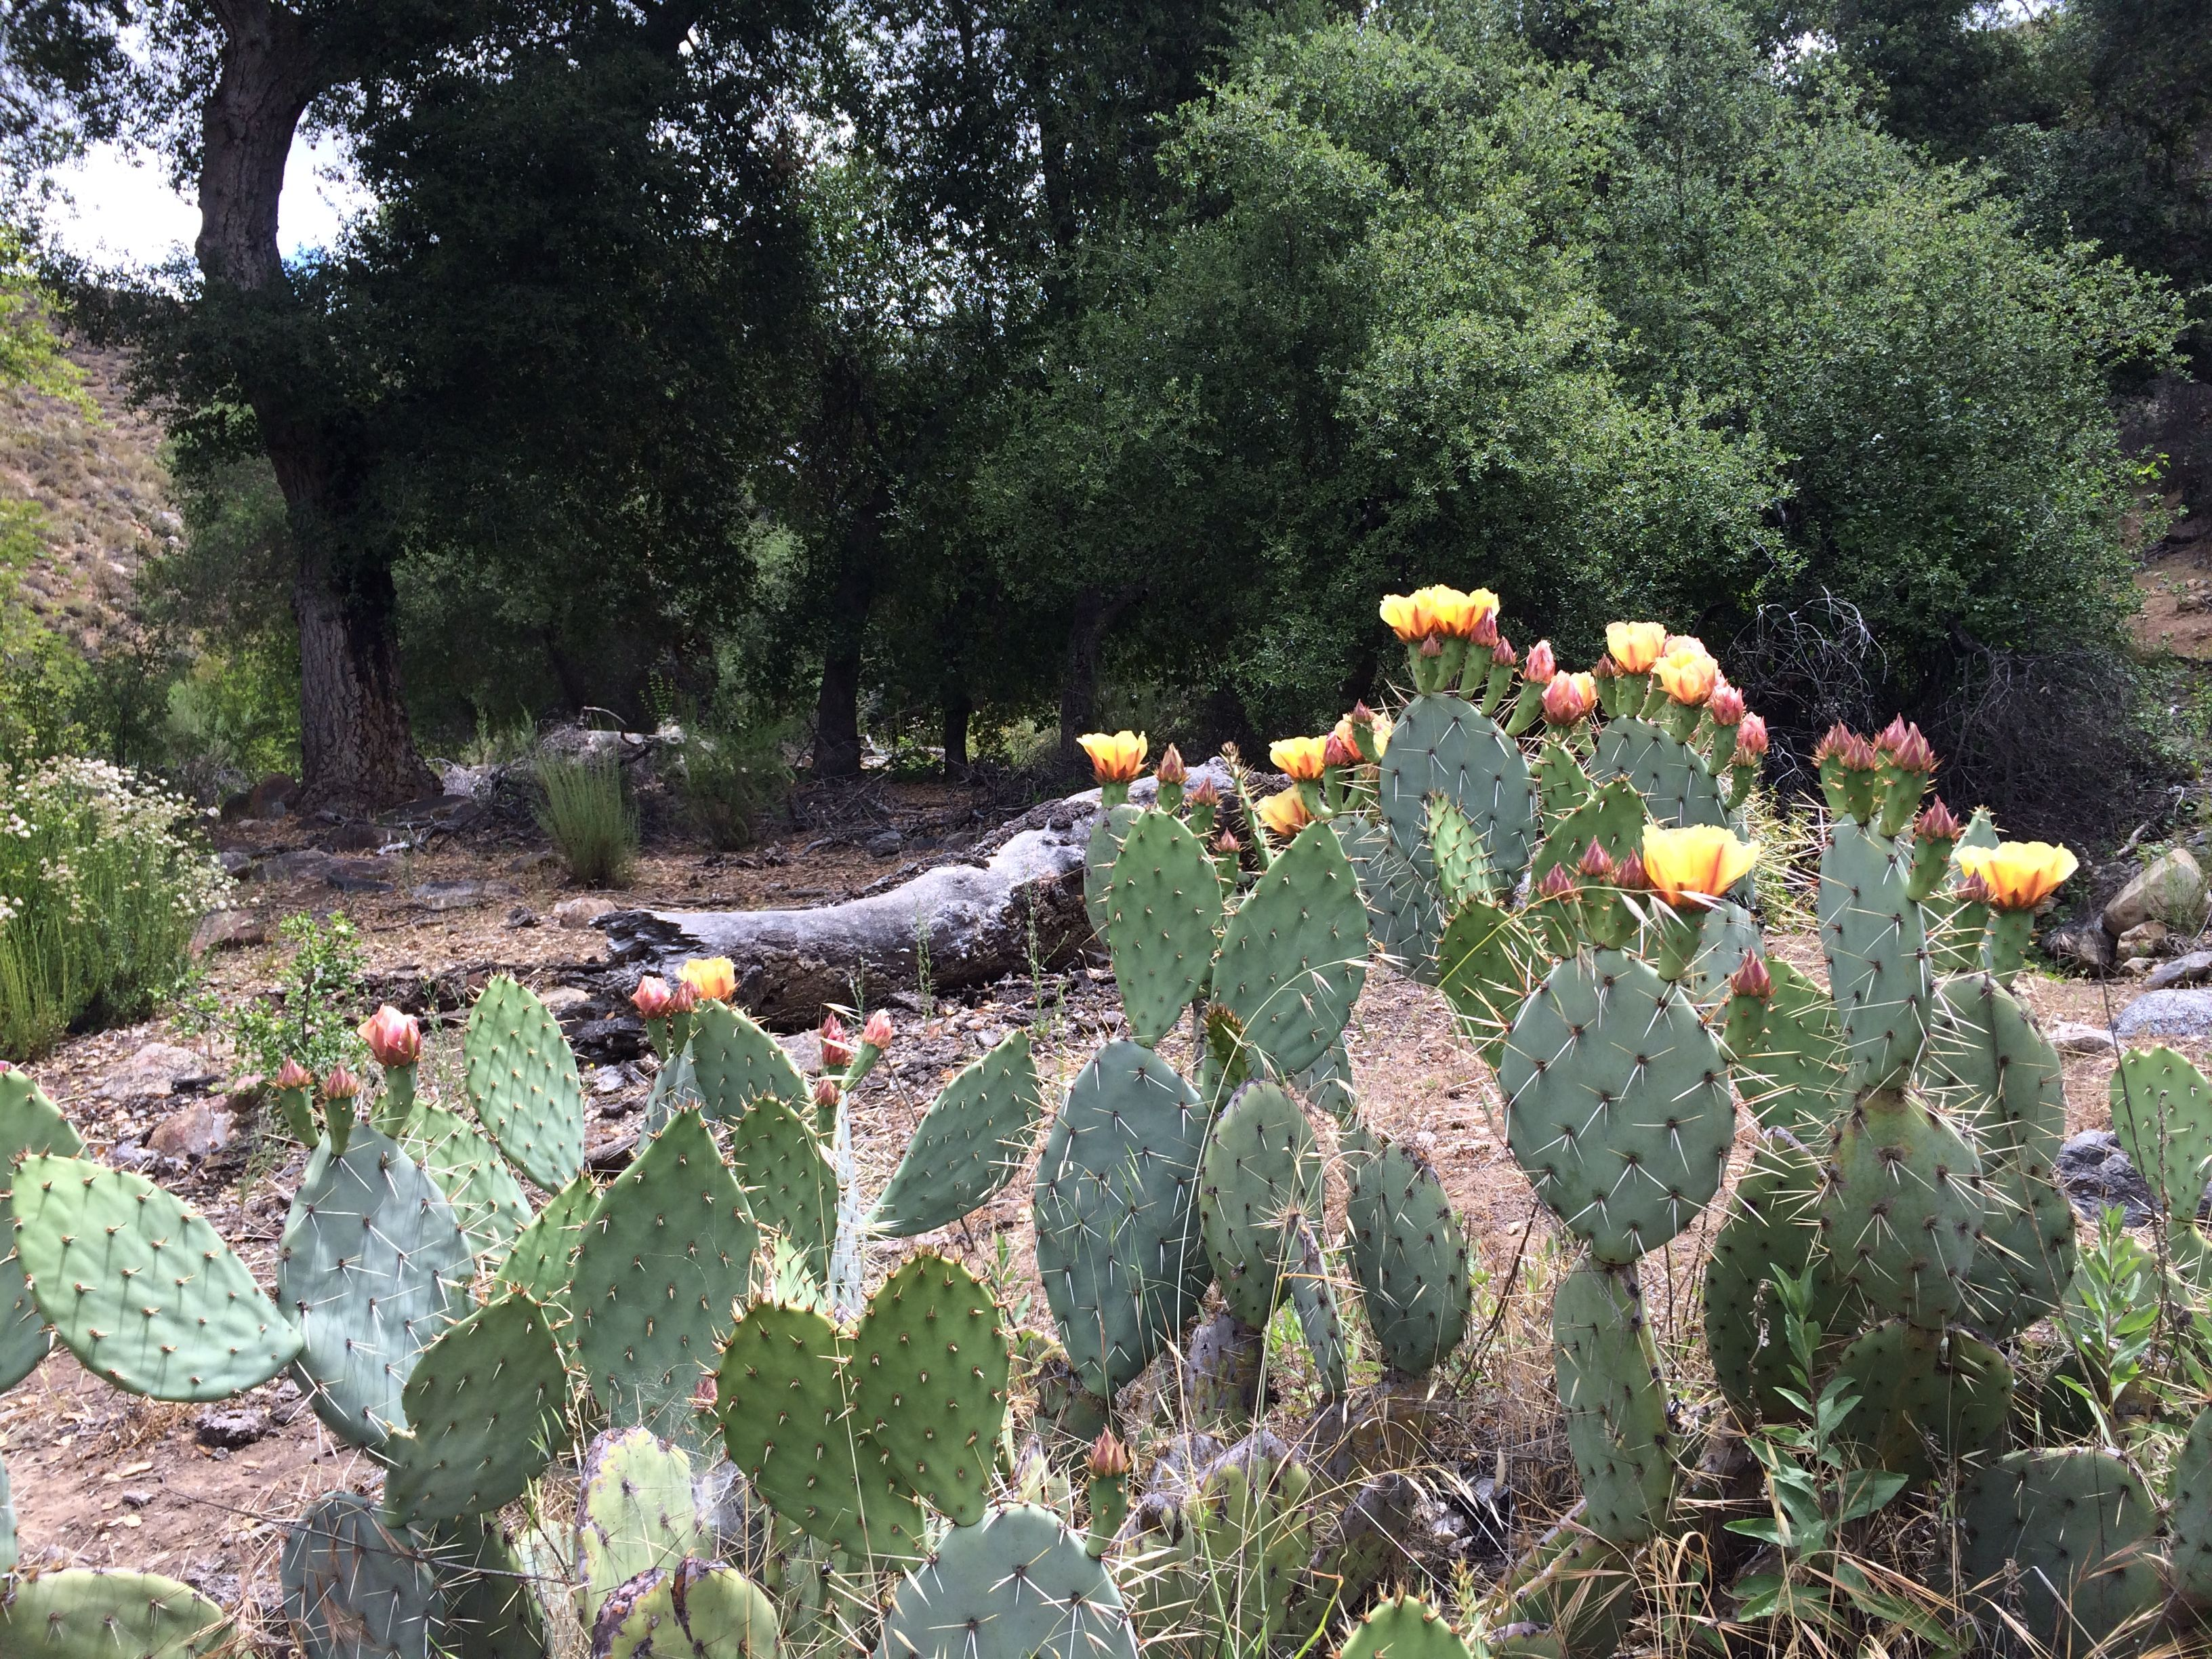 Cactus flowers in La Bellota Canyon